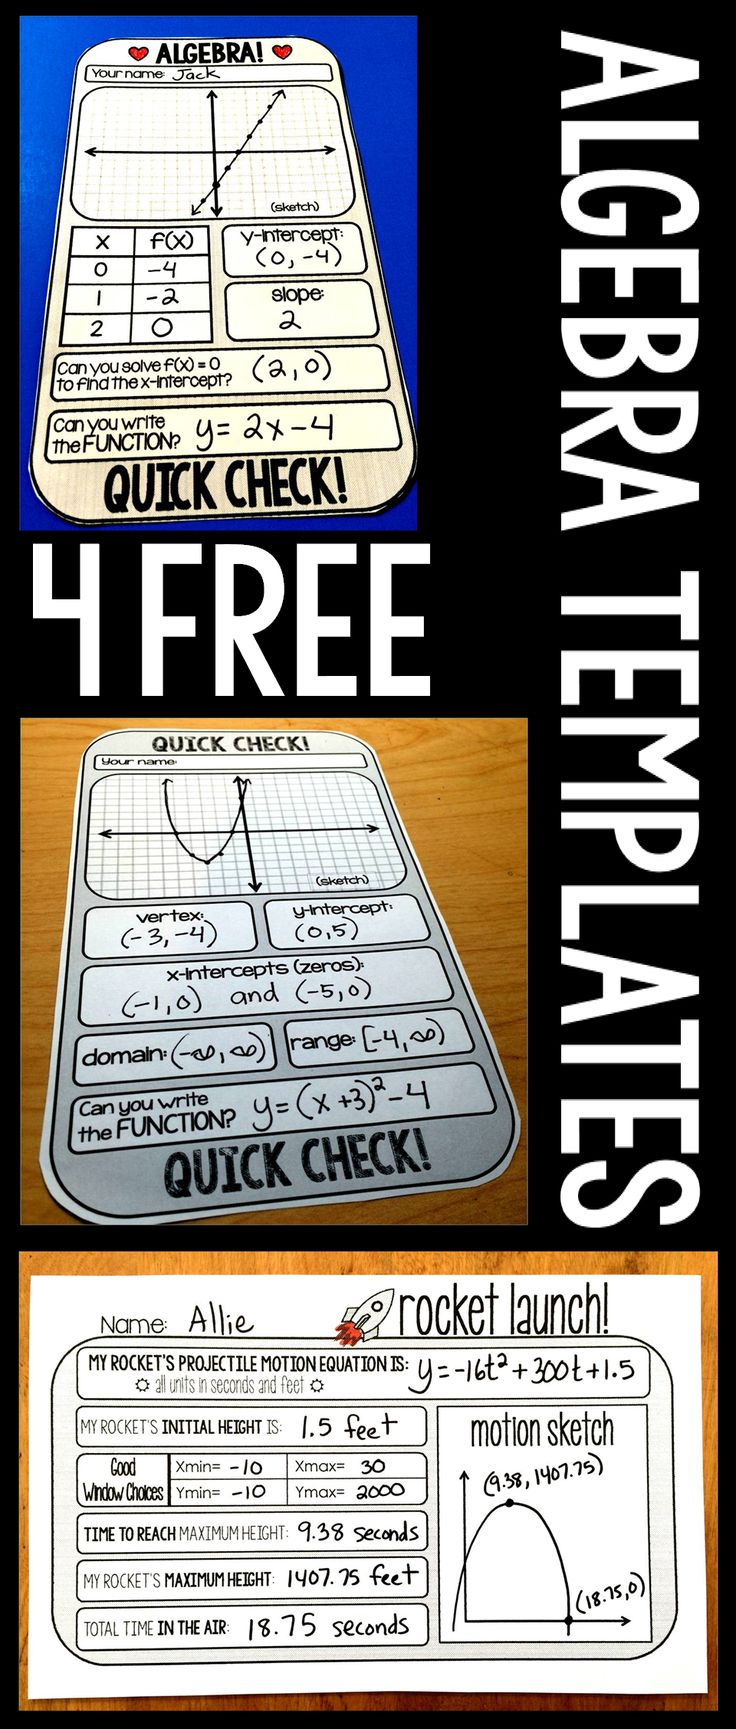 I LOVE warm-up templates! It makes life so much easier to know my warm-up is all set and ready to go. Here are 4 FREE warm-up templates that will work in Algebra 1 and Algebra 2. I use them in my Special Ed Algebra 2 classes. The repeated practice on the skills covered by the templates give my students a ton of confidence and has helped them retain information so much better. All of these templates are available for FREE download in my TpT store. They will also be linked at the bottom of thi